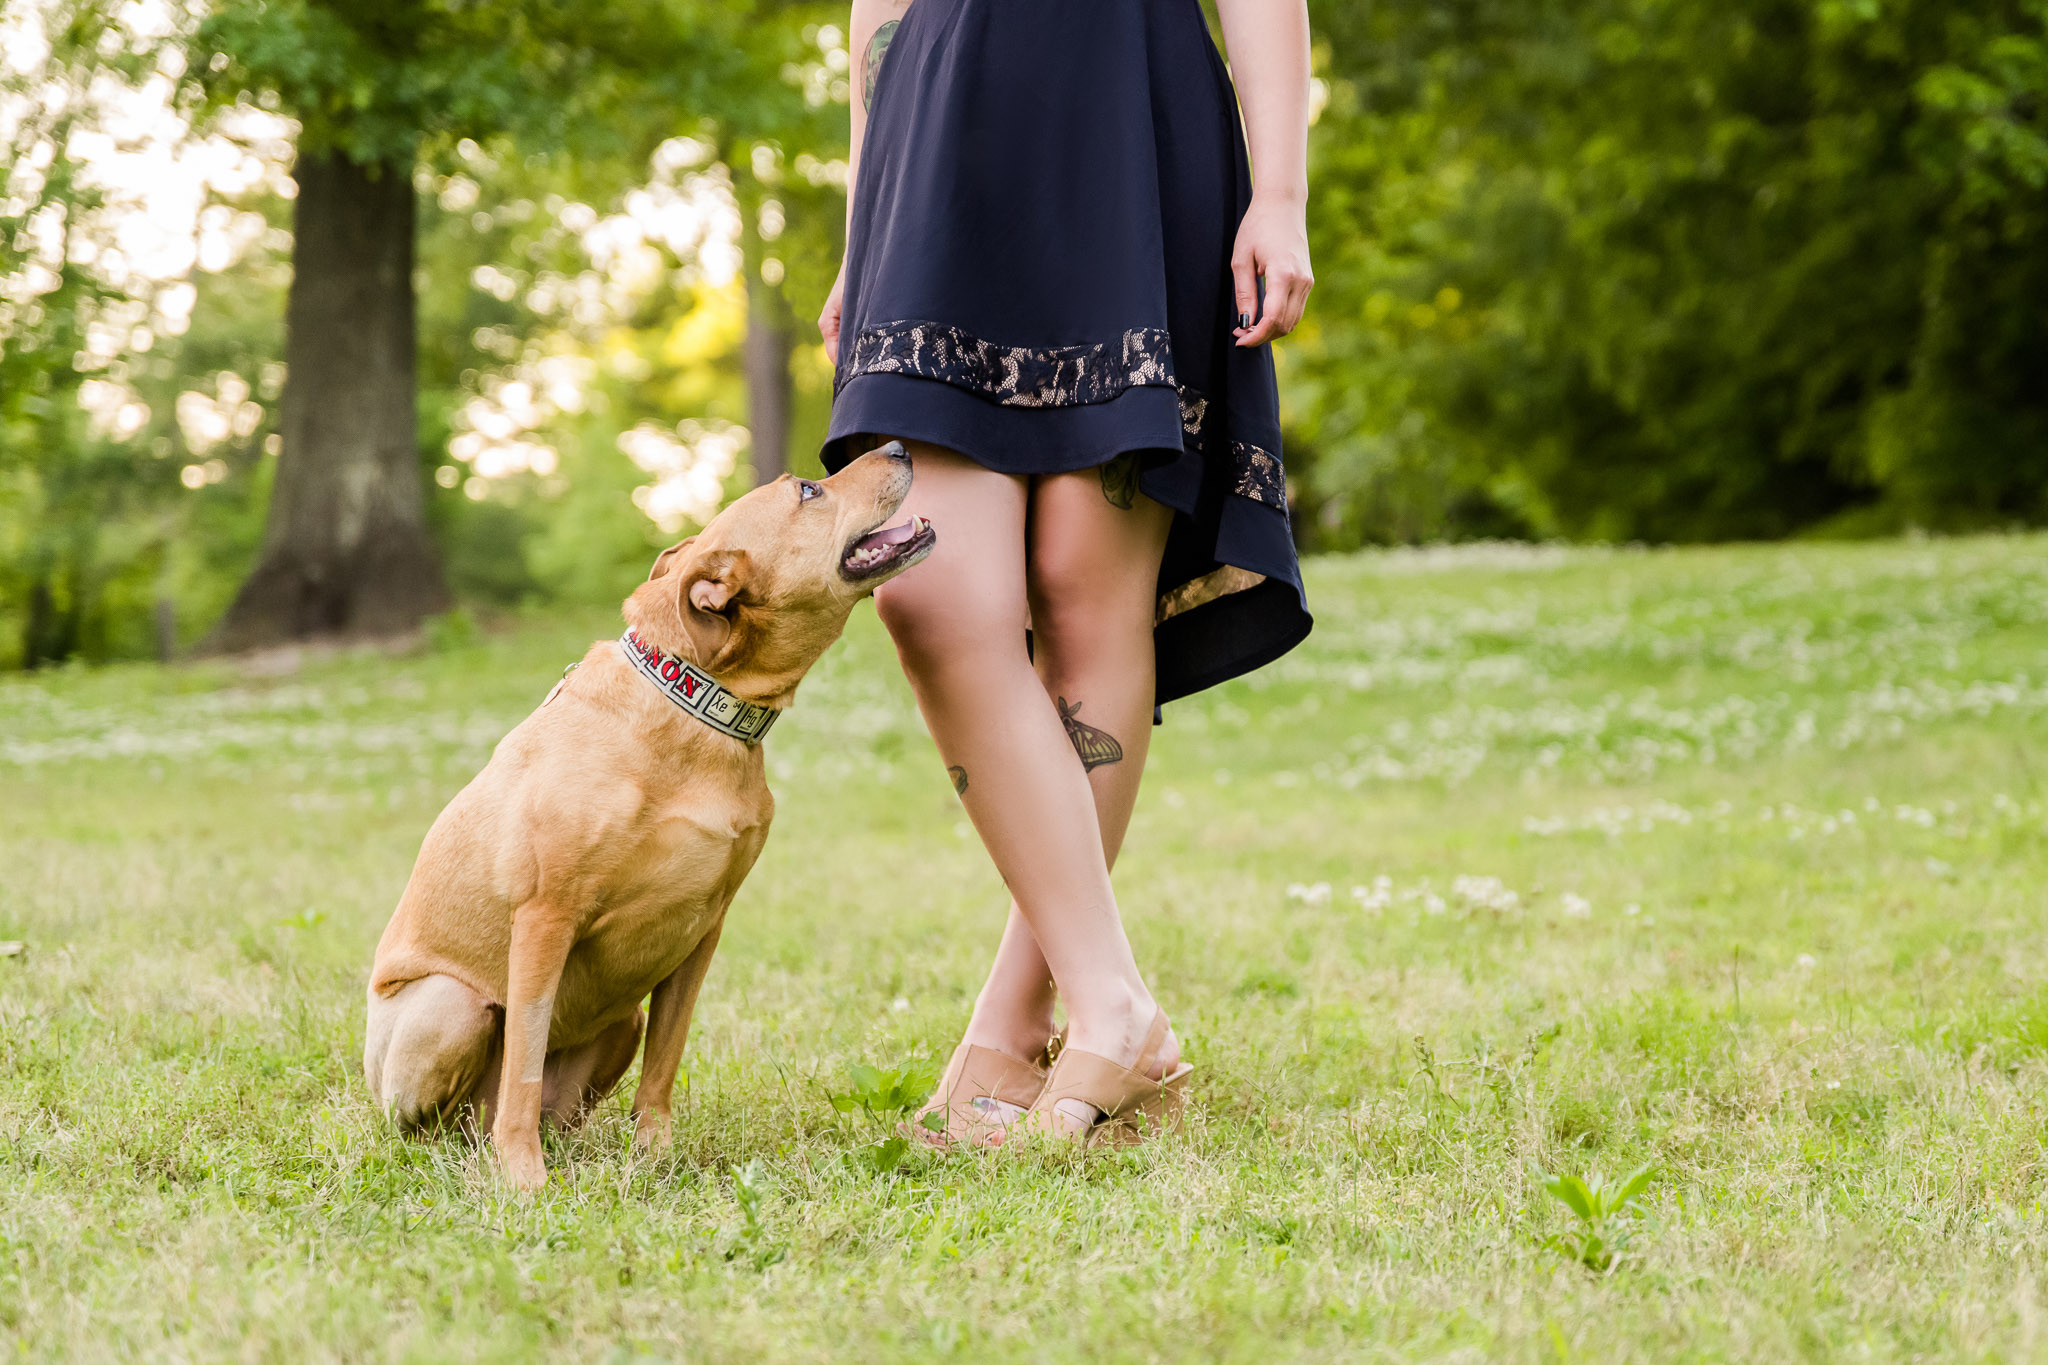 Images of owners with their dogs are a must have from any pet photography session - Atlanta pet photographer can help you be in the image while your dog remains the star of the show.